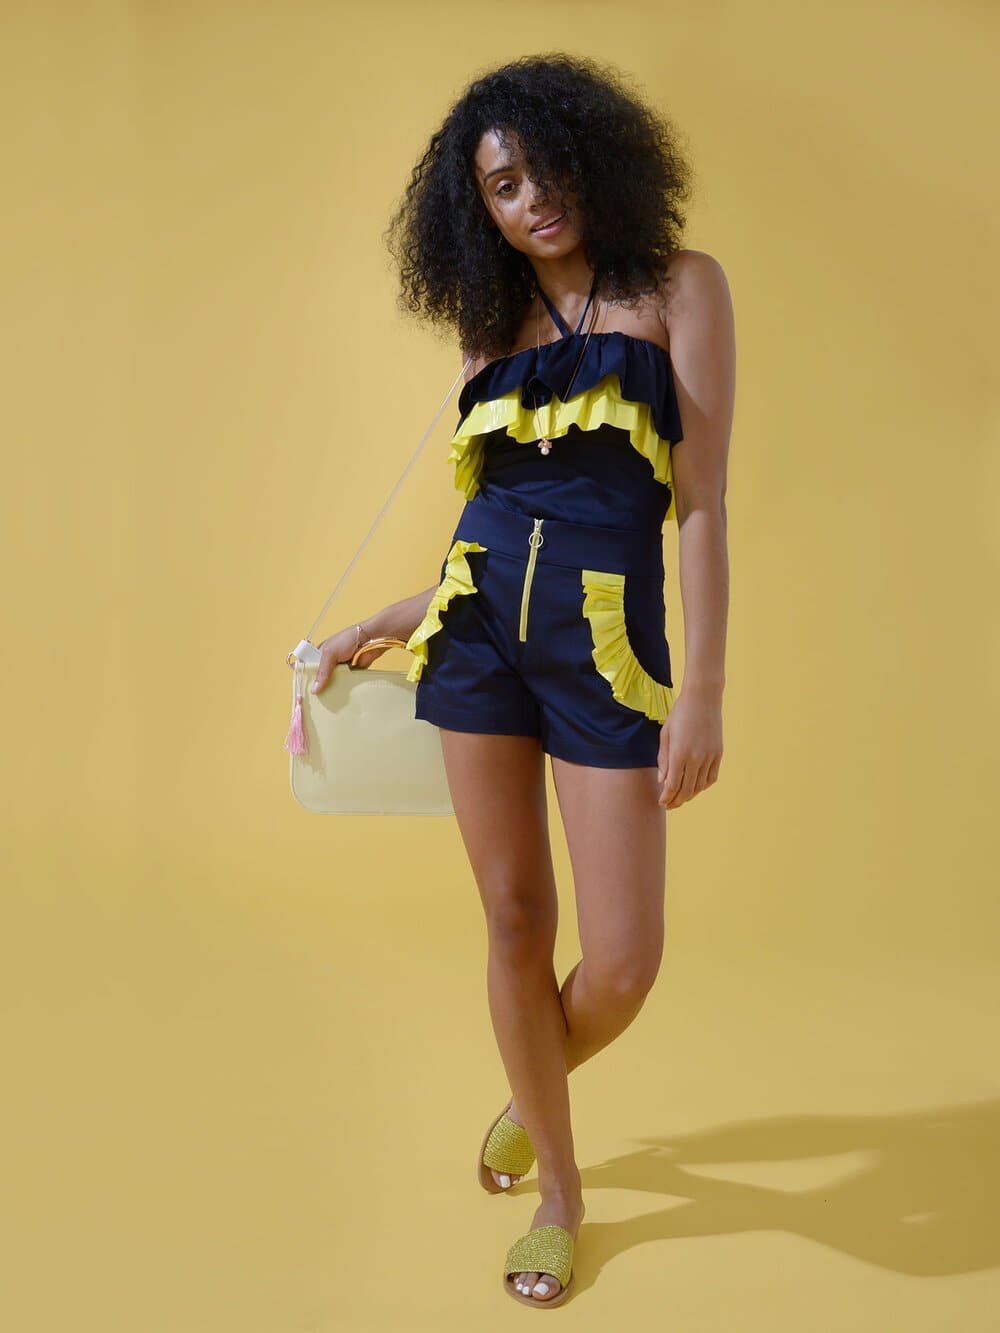 Woman wearing a navy blue strapless halter top with yellow ruffles around the bust and shorts with yellow ruffles around the pockets